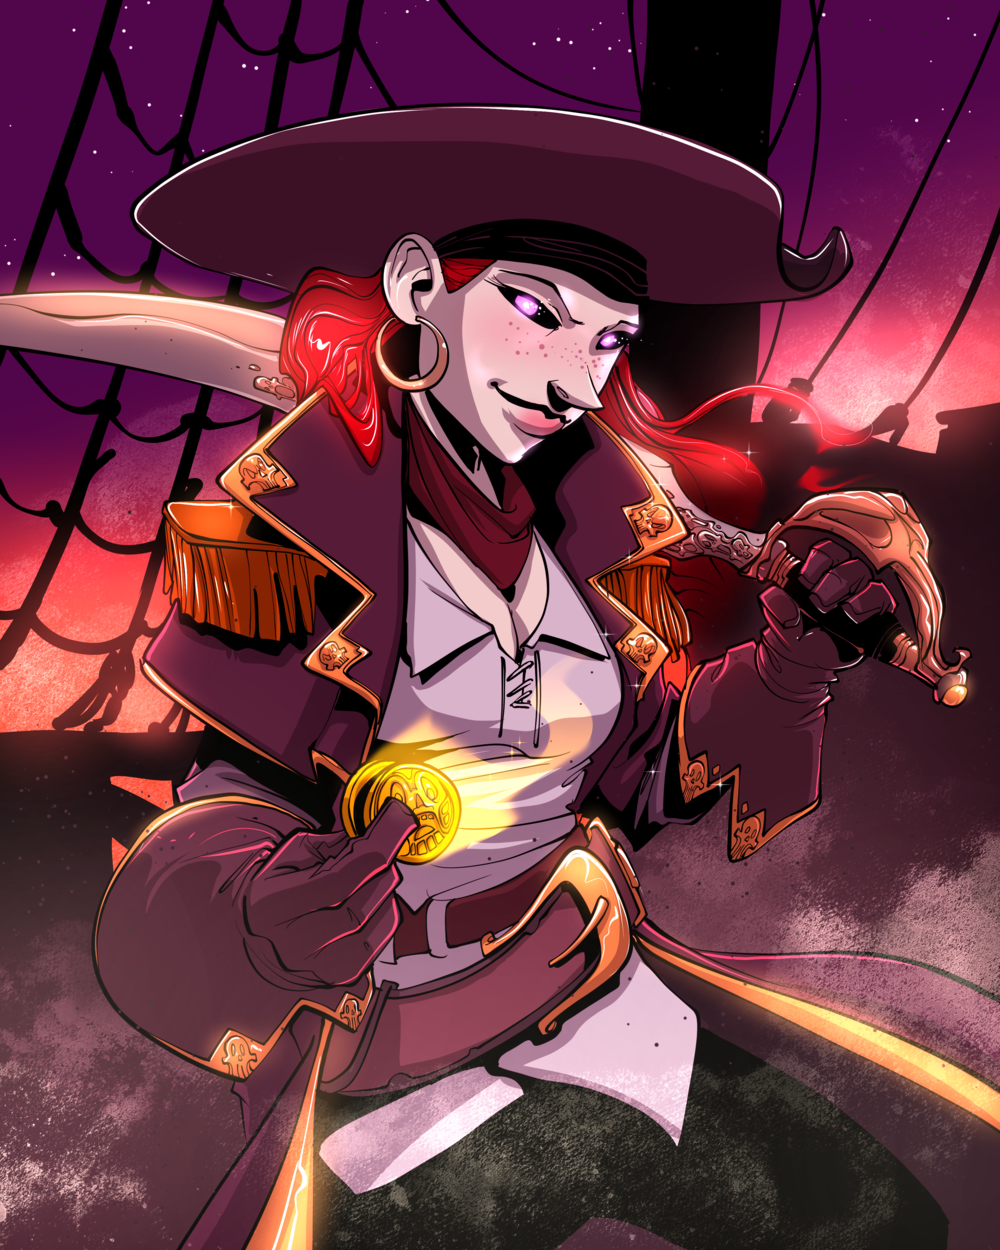 Cursed_pirate - manny Trembley.png